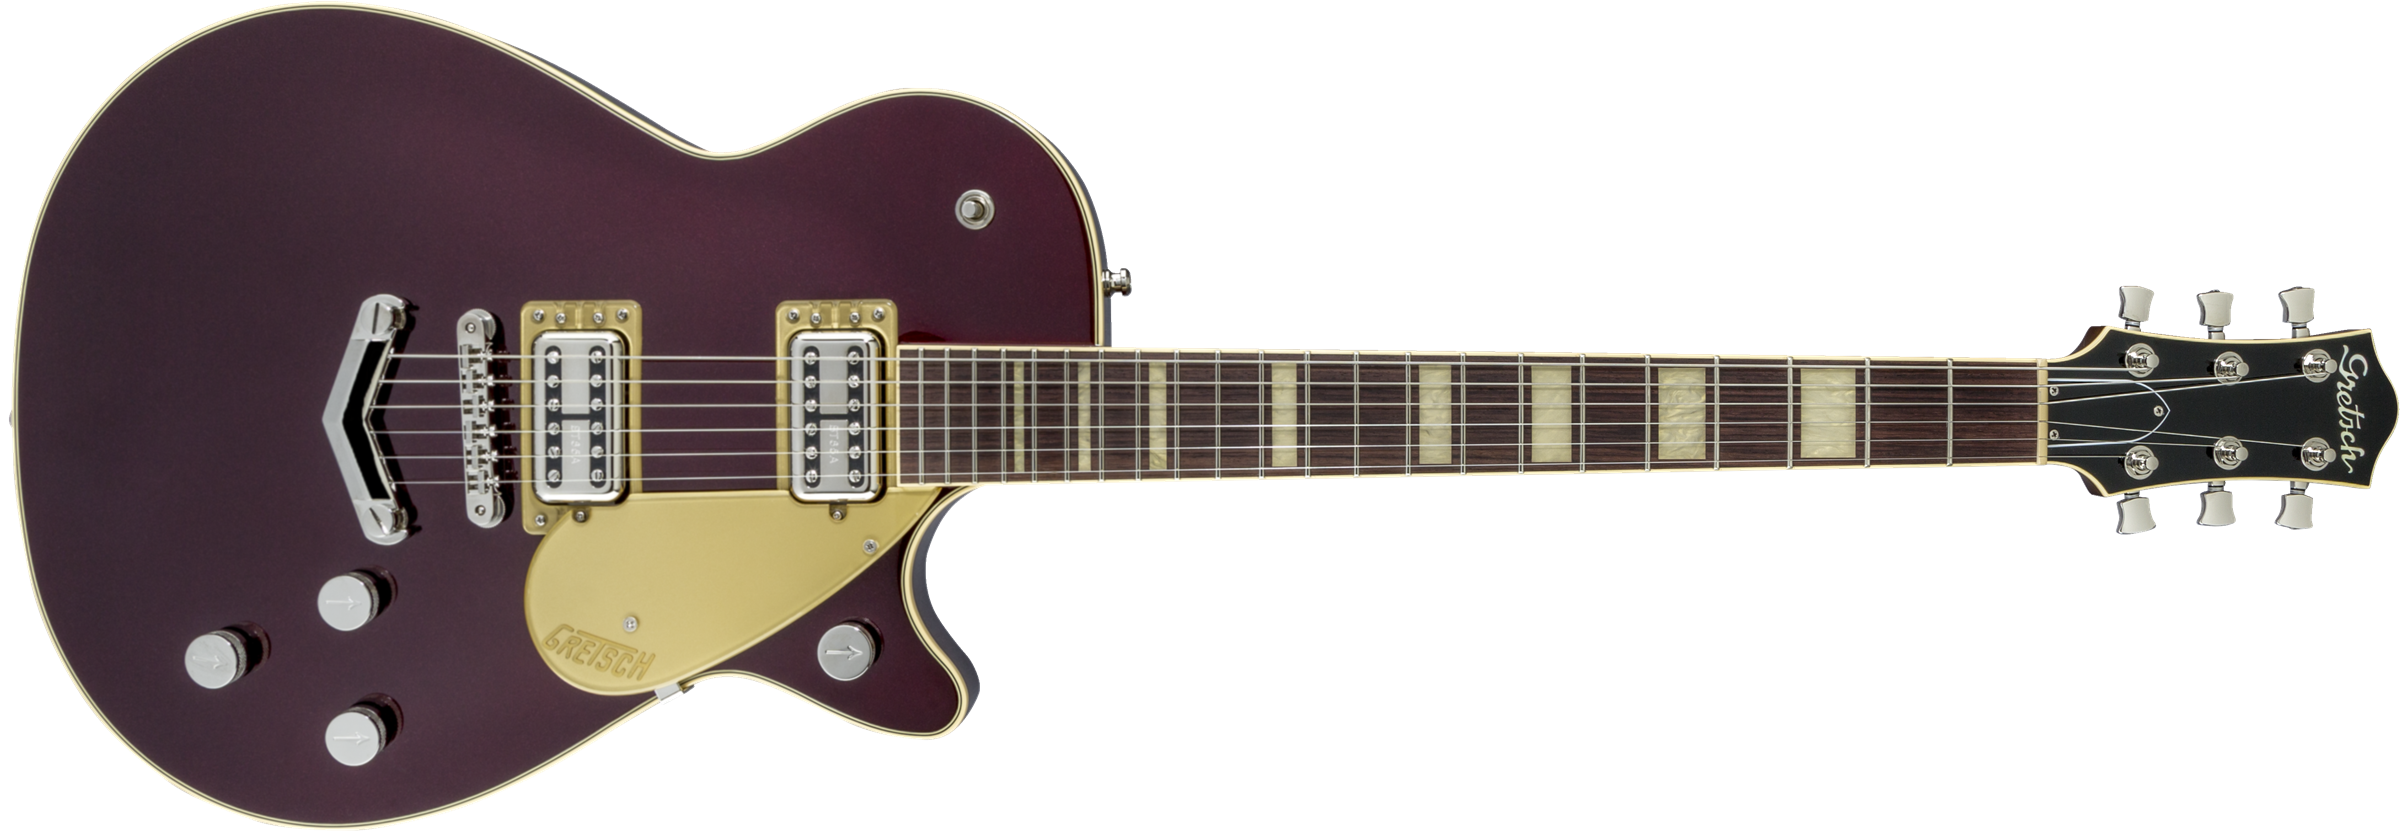 GRETSCH-G6228-Players-Edition-Jet-BT-with-V-Stoptail-Rosewood-Fingerboard-Dark-Cherry-Metallic-sku-571001243